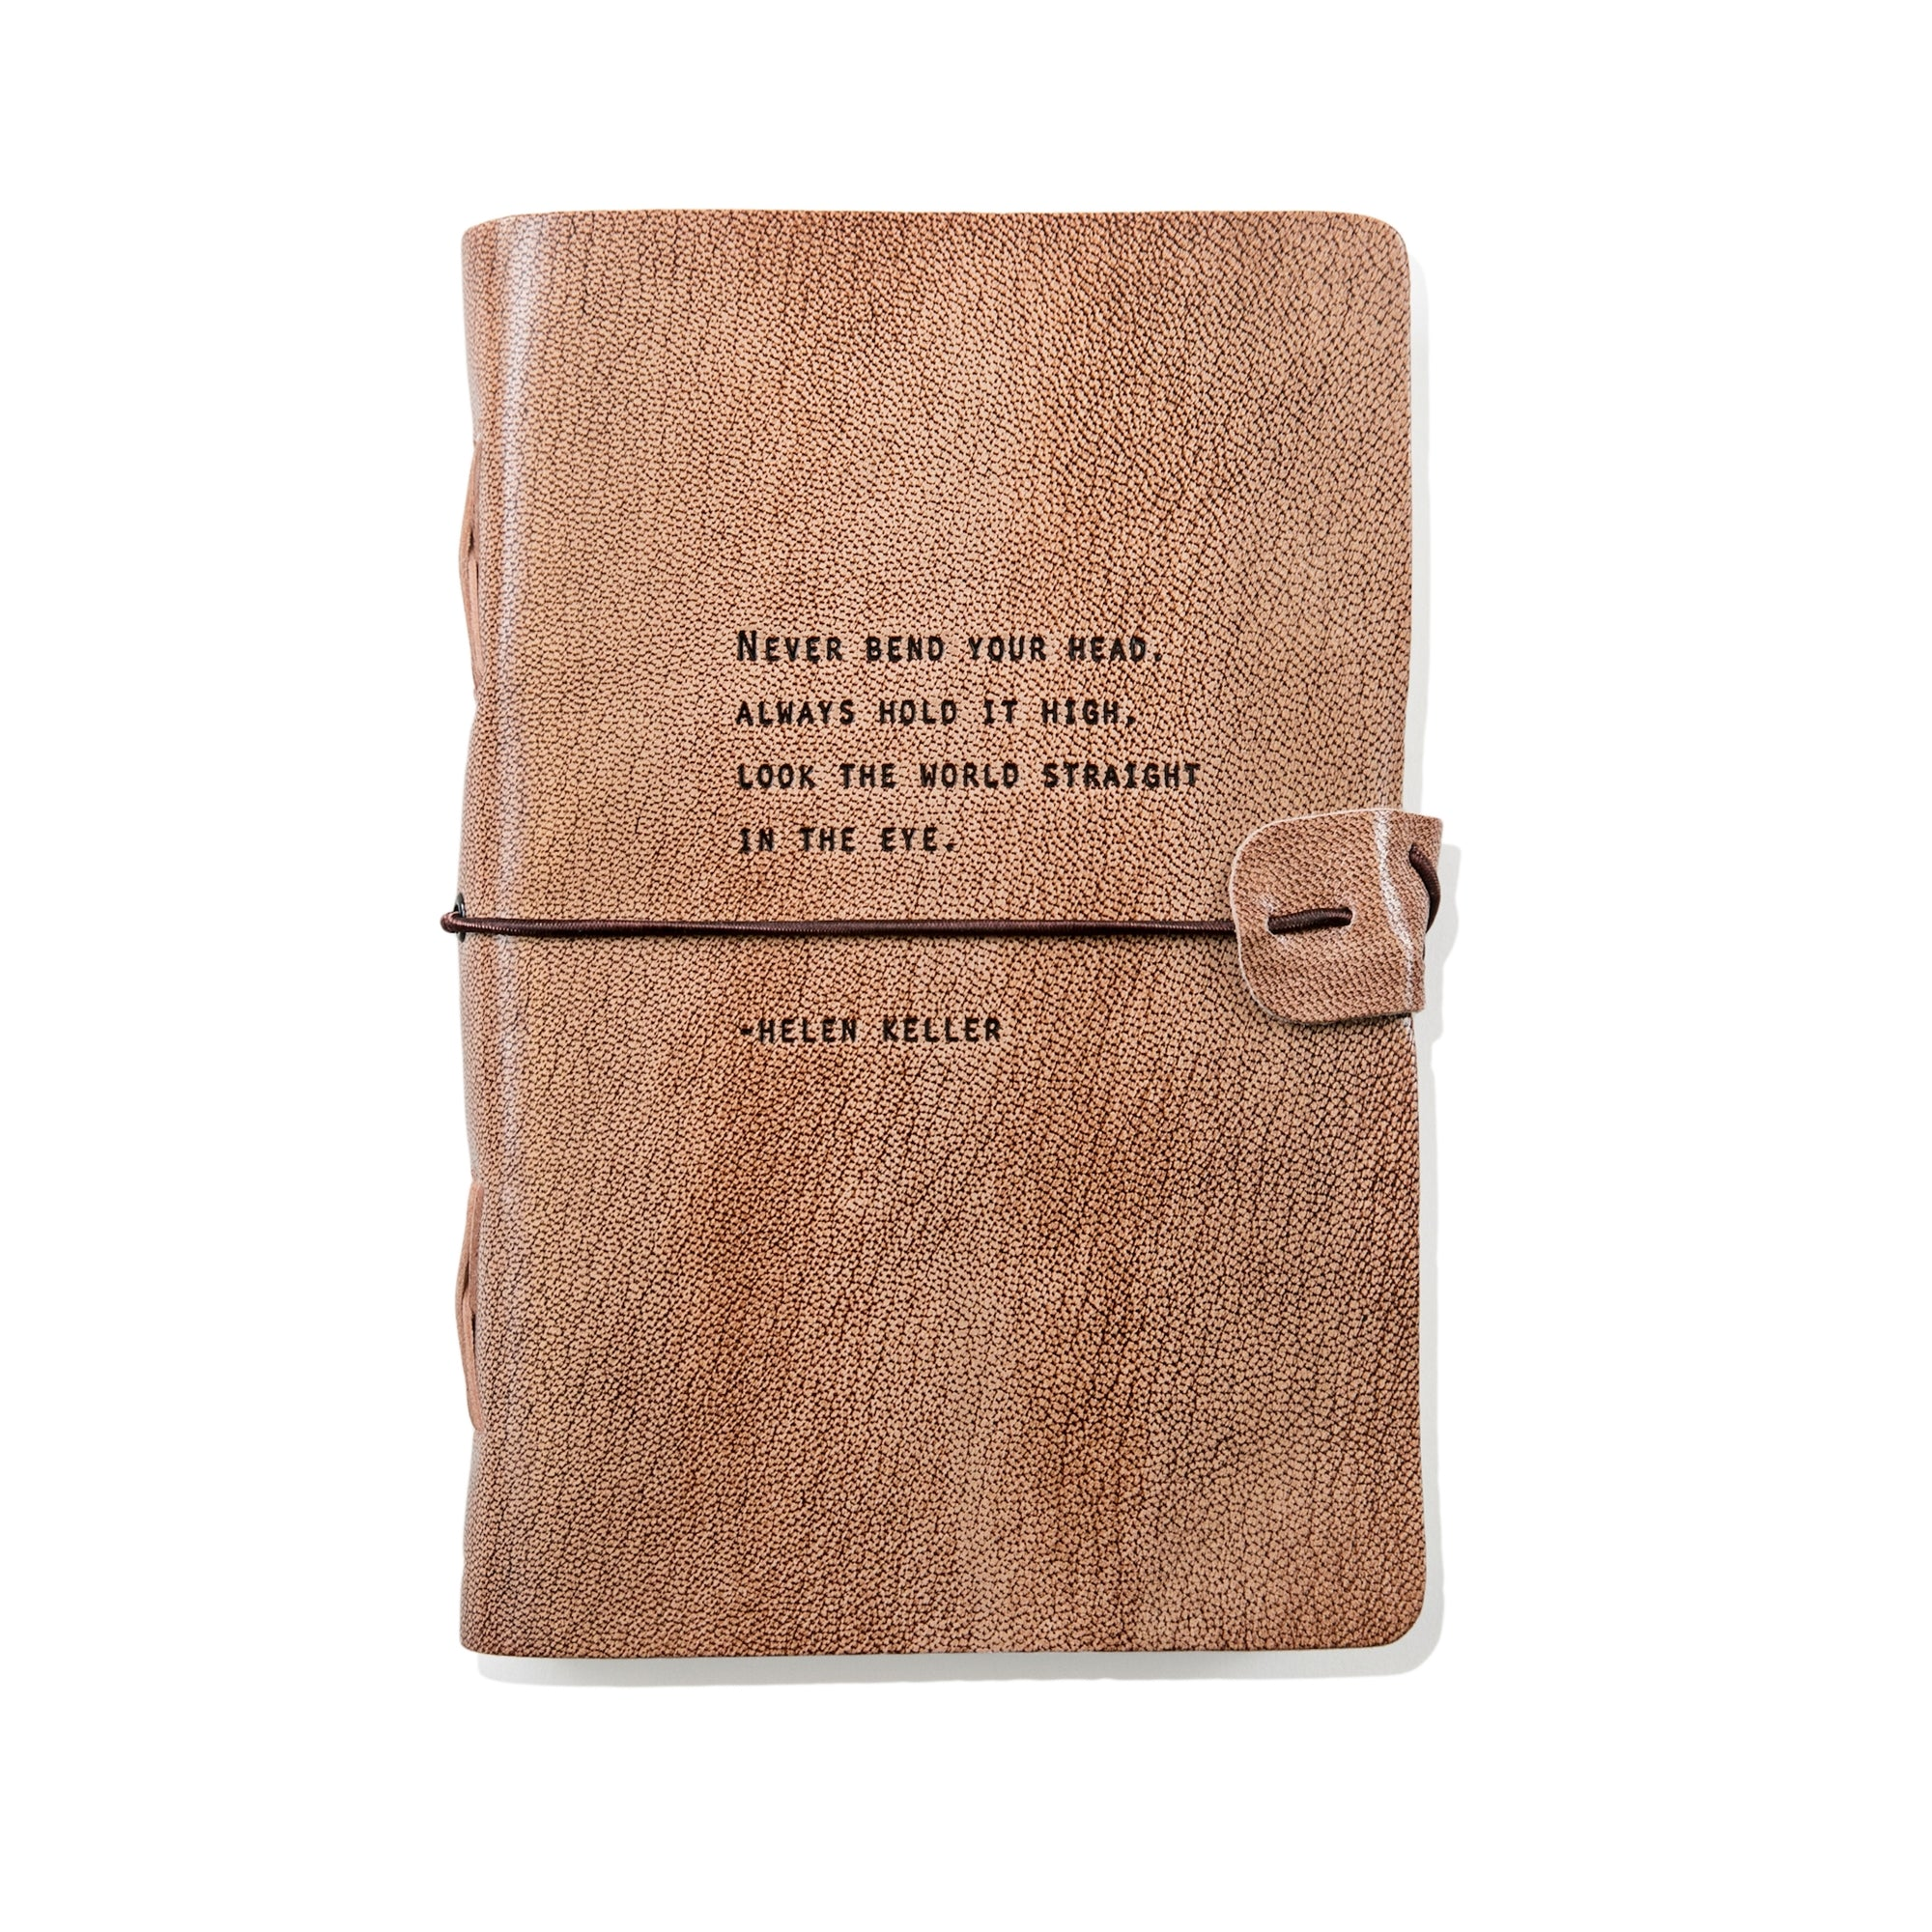 Sugarboo Designs Leather Journal Helen Keller-Brands-A Cottage in the City